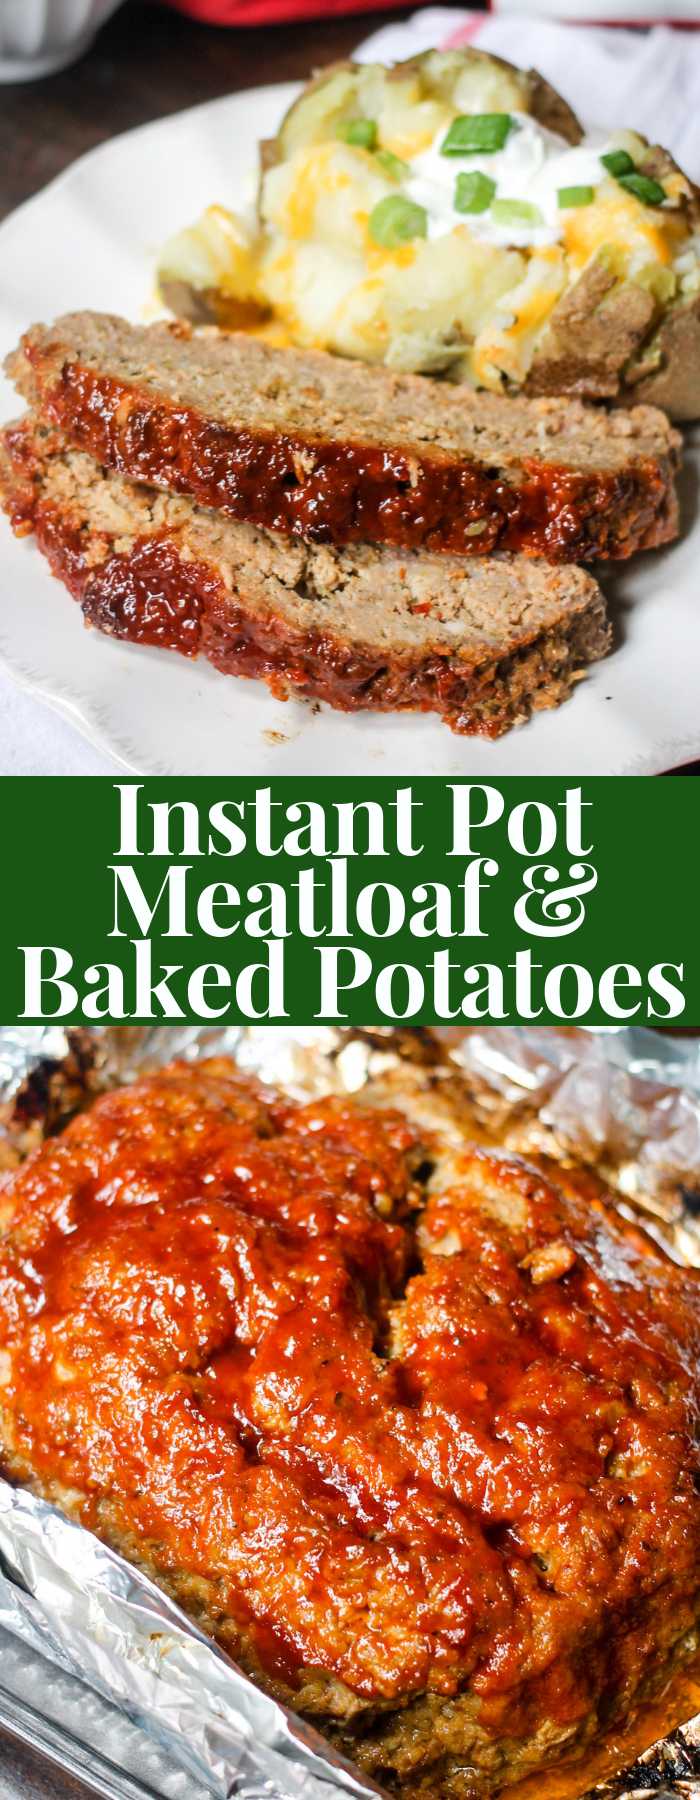 Instant Pot Meatloaf and Baked Potatoes is a set it and forget it family meal! Makes life way easier, and the meatloaf is the moistest you will ever try!